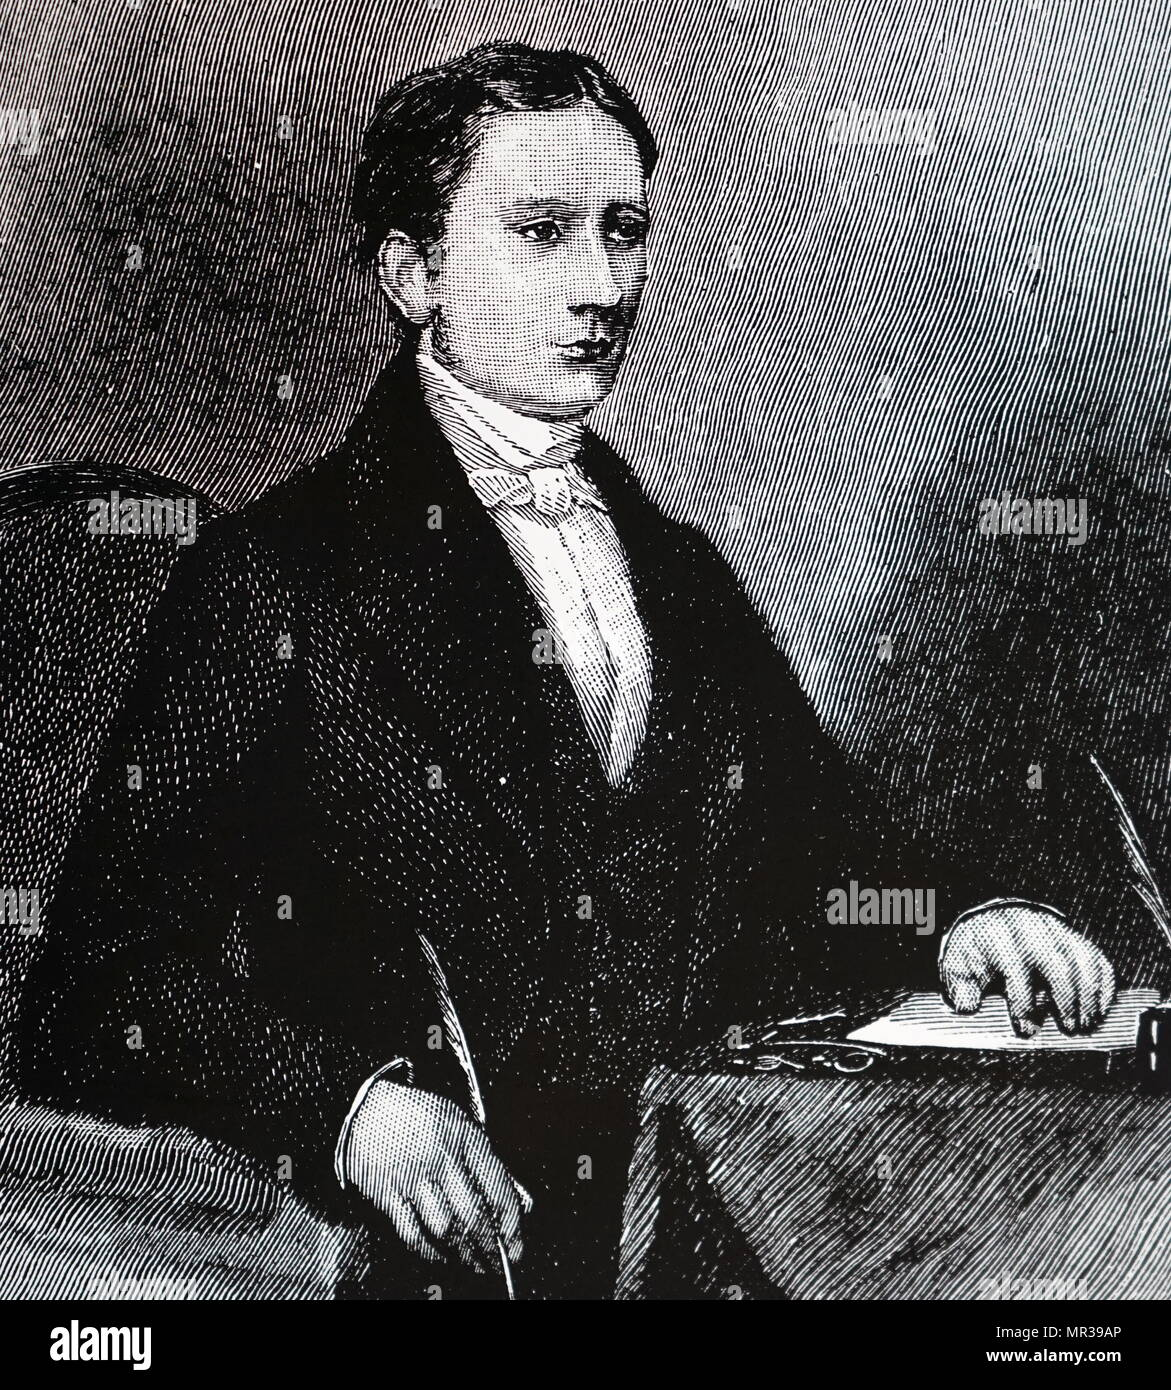 Portrait of Isaac Pitman (1813-1897) an English teacher who developed the most widely used system of shorthand, known now as Pitman shorthand. Dated 19th century - Stock Image